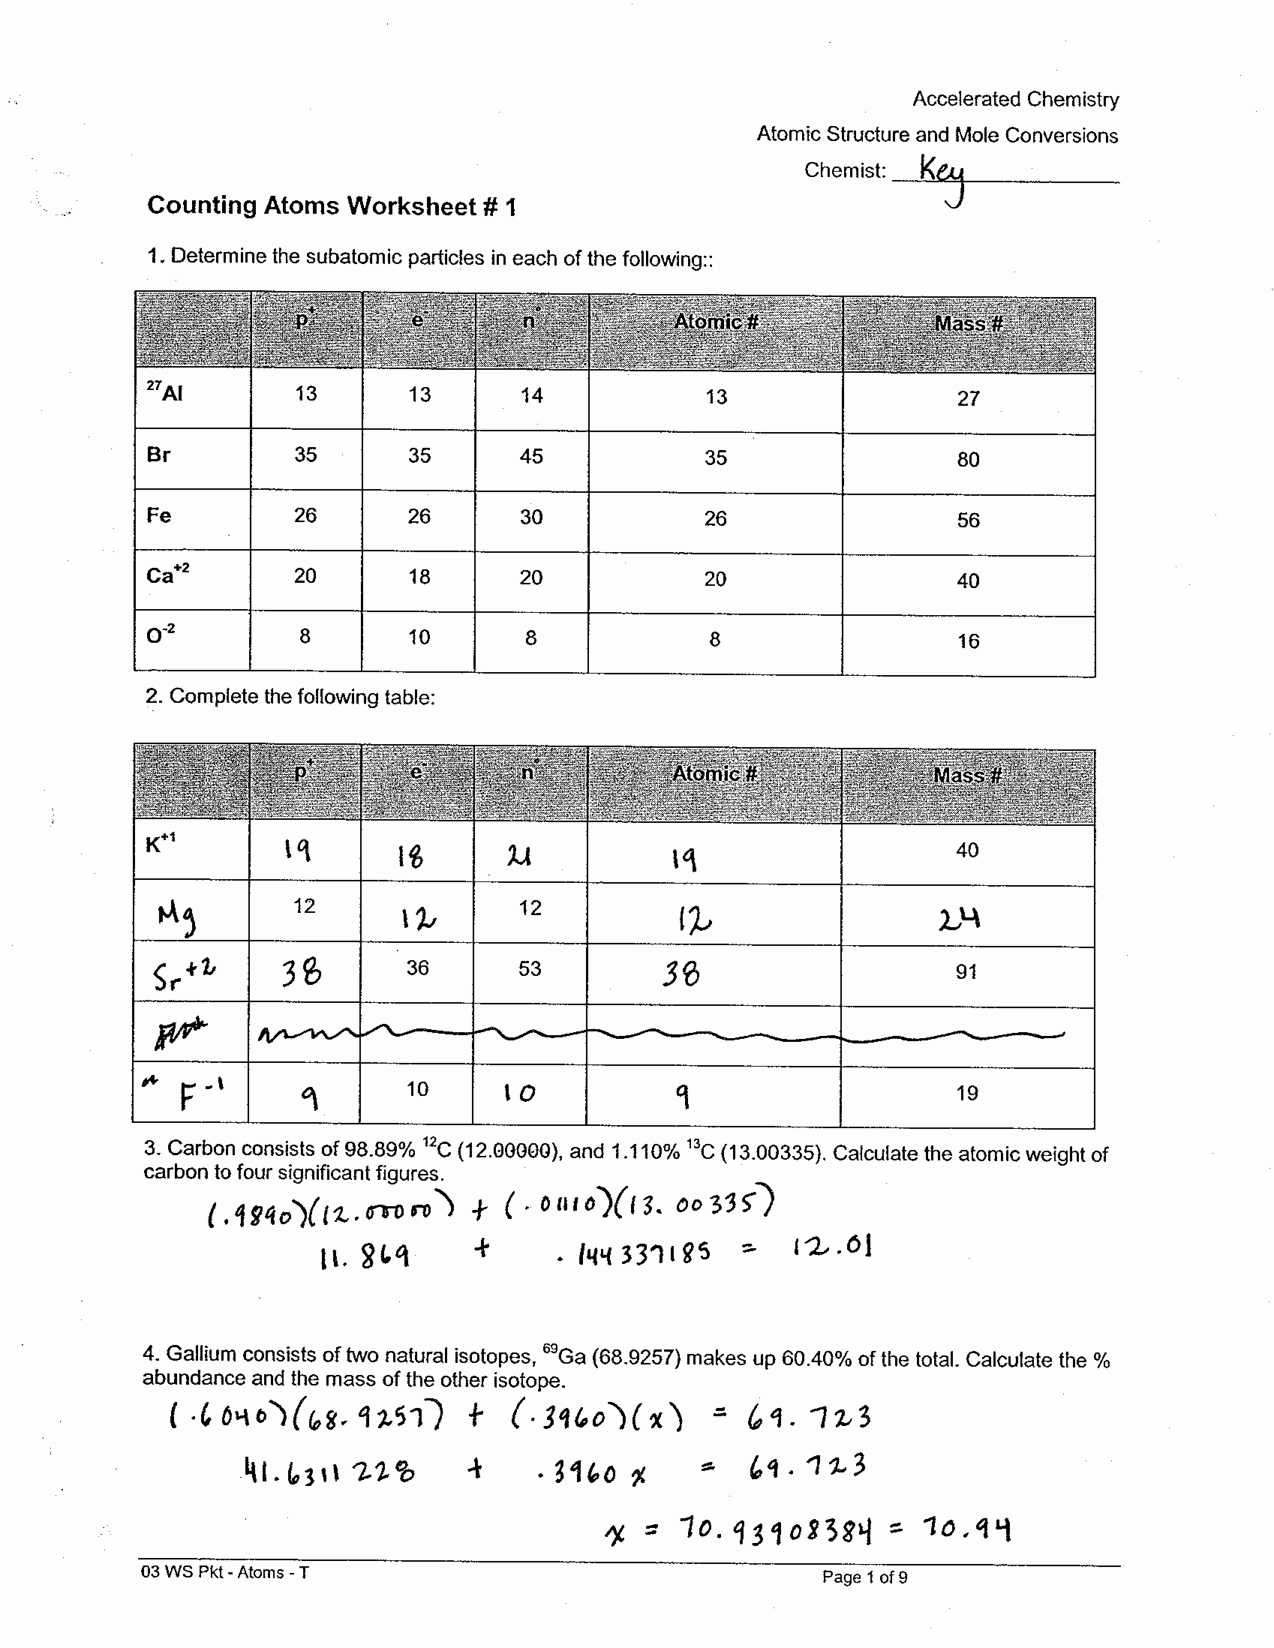 Atomic Structure Worksheet Answer Key Best Of 17 Best Of Counting atoms Worksheet Answers